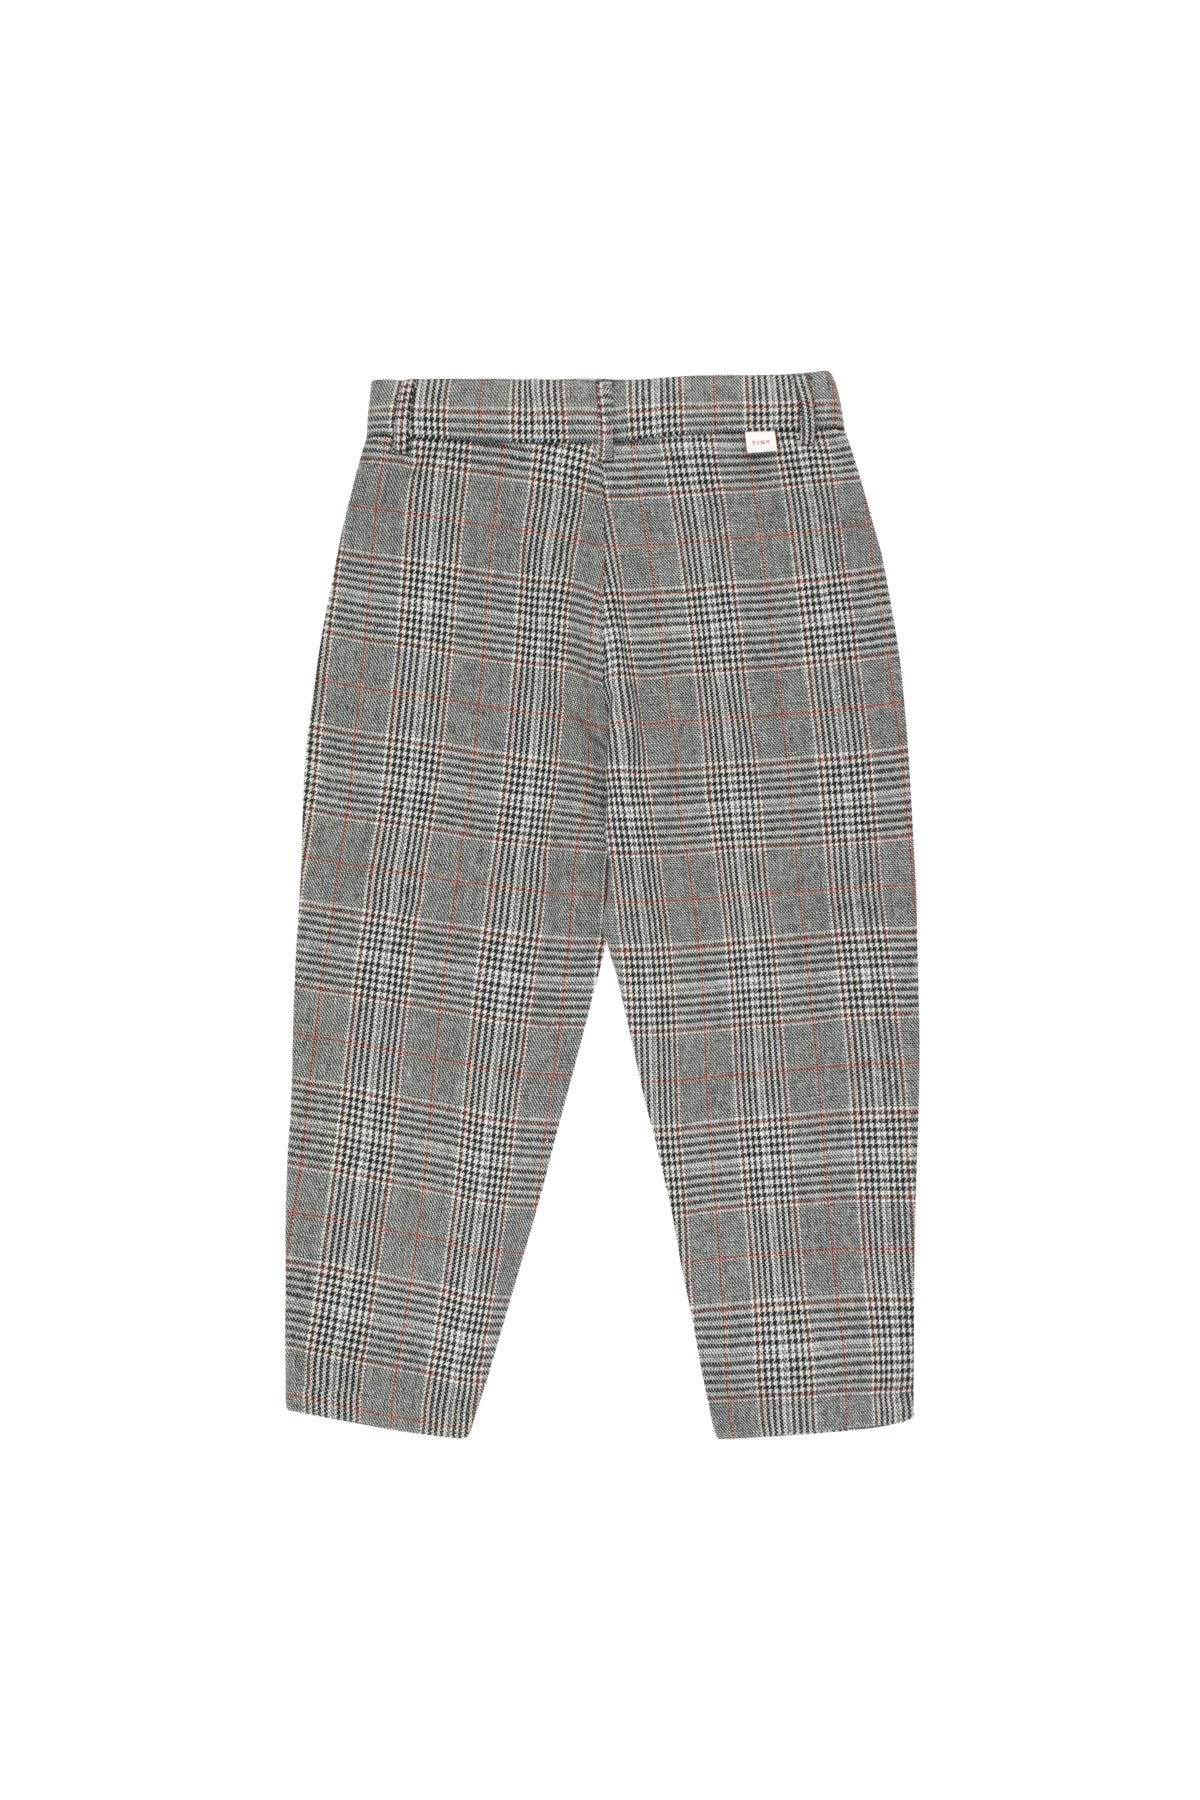 Tiny Cottons Tweed Pleated Pant - Plaid